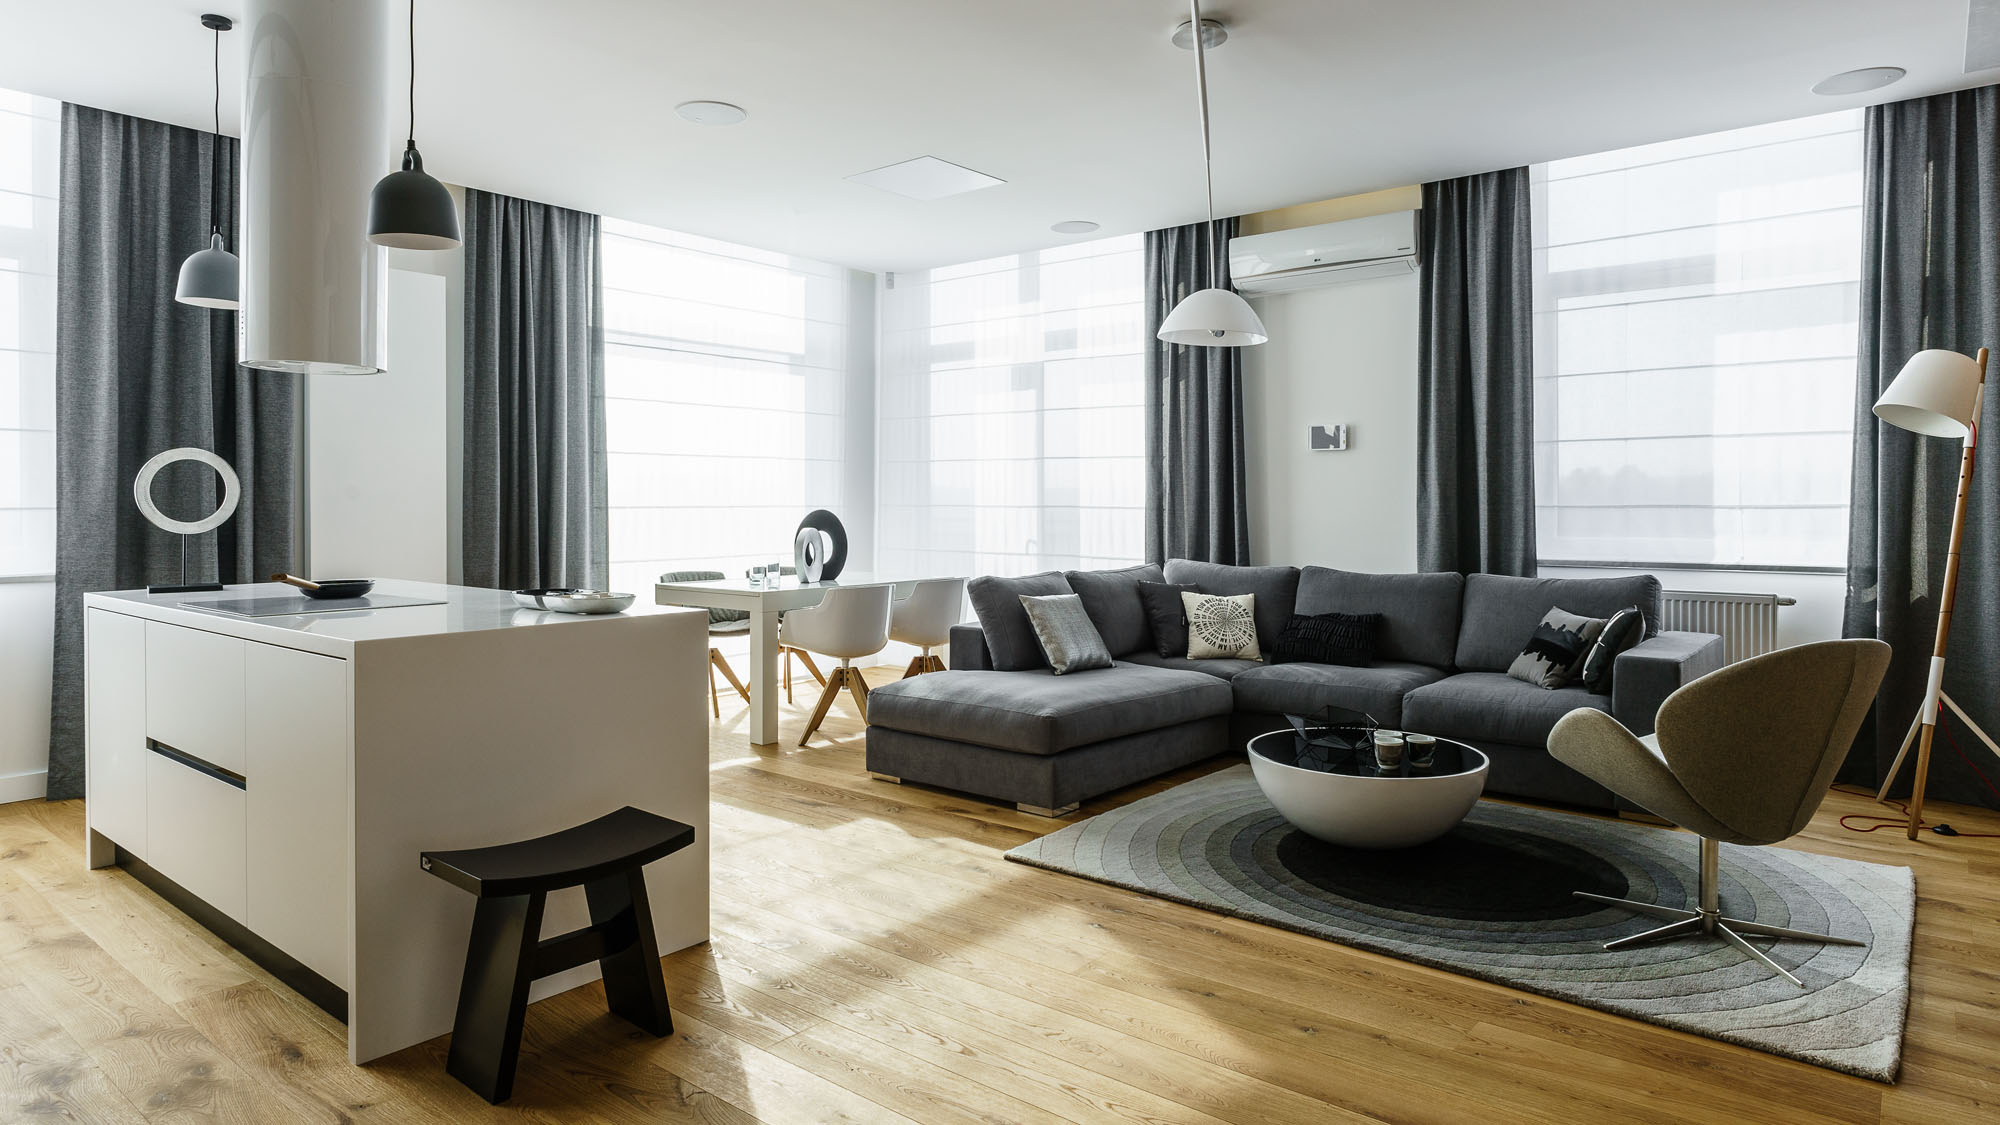 Modern Metallic, Wooden, White Theme Three Bedroom Apartment in Gdynia by Dragon Art-01